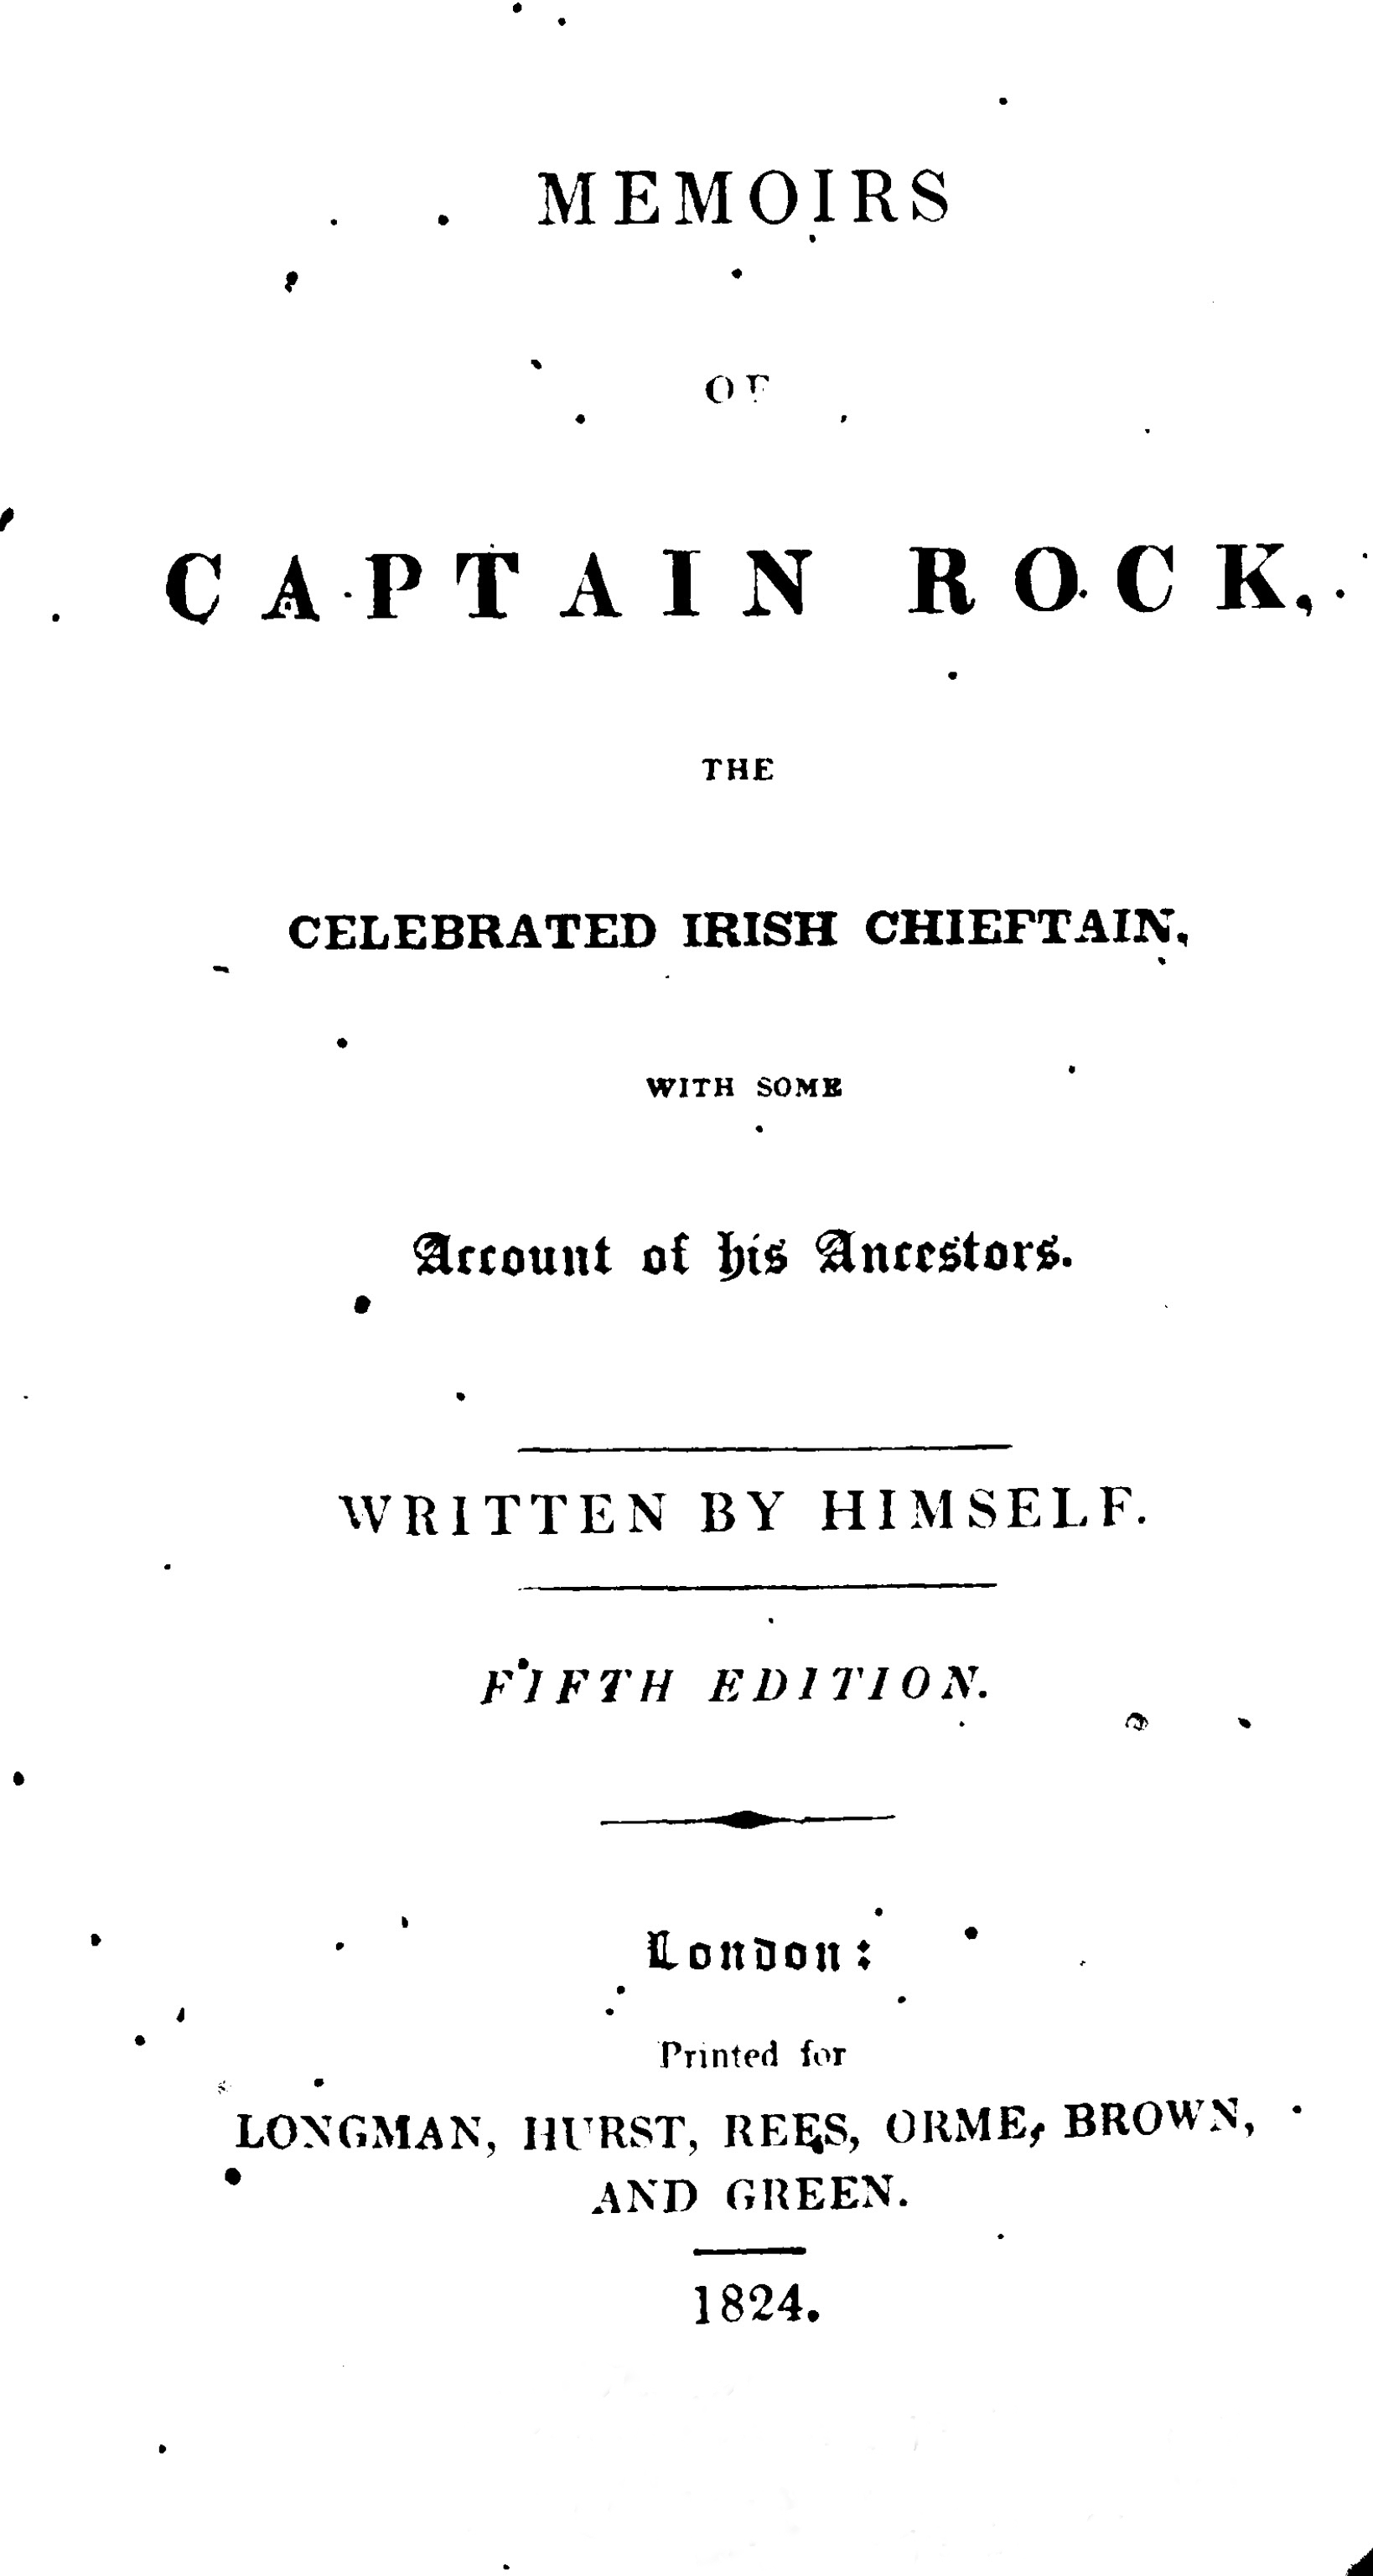 photo of Memoirs of Captain Rock, Fifth Edition, 1824